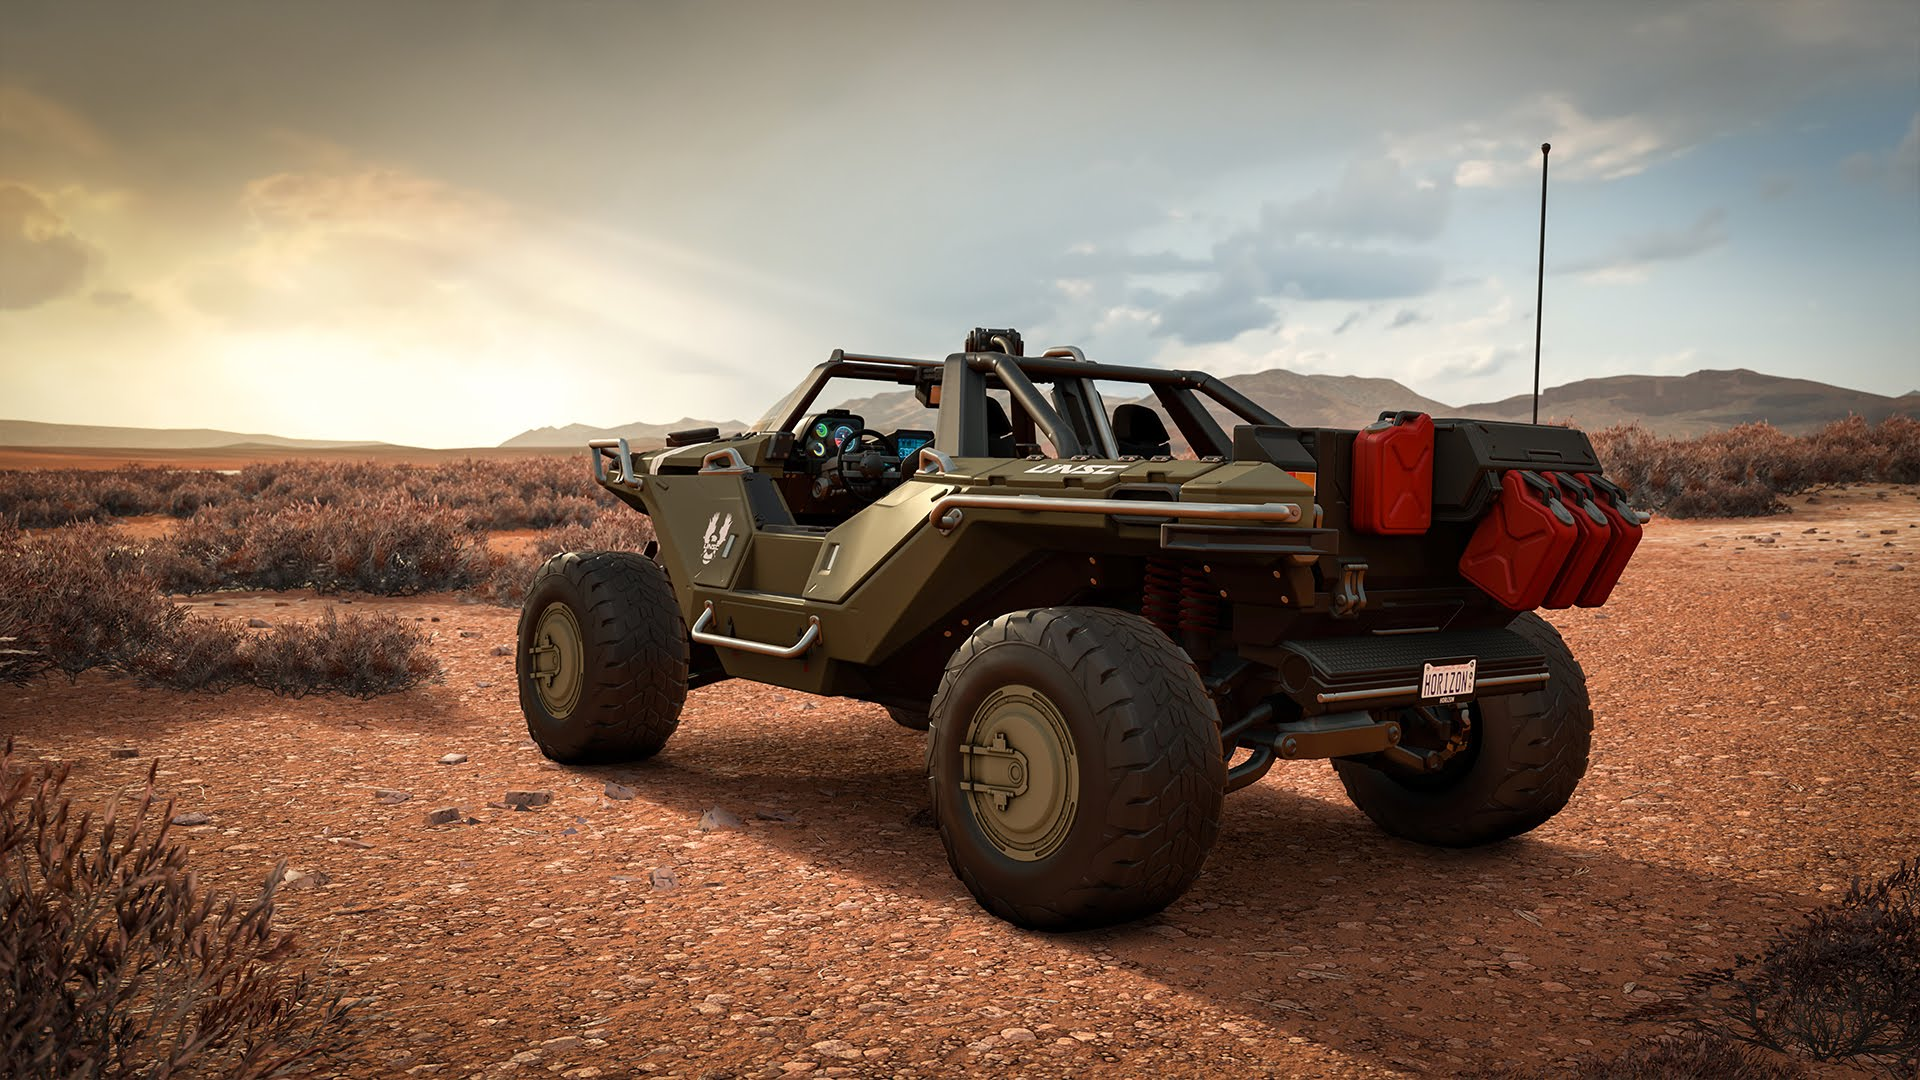 Halo players to receive free Warthog in Forza Horizon 3